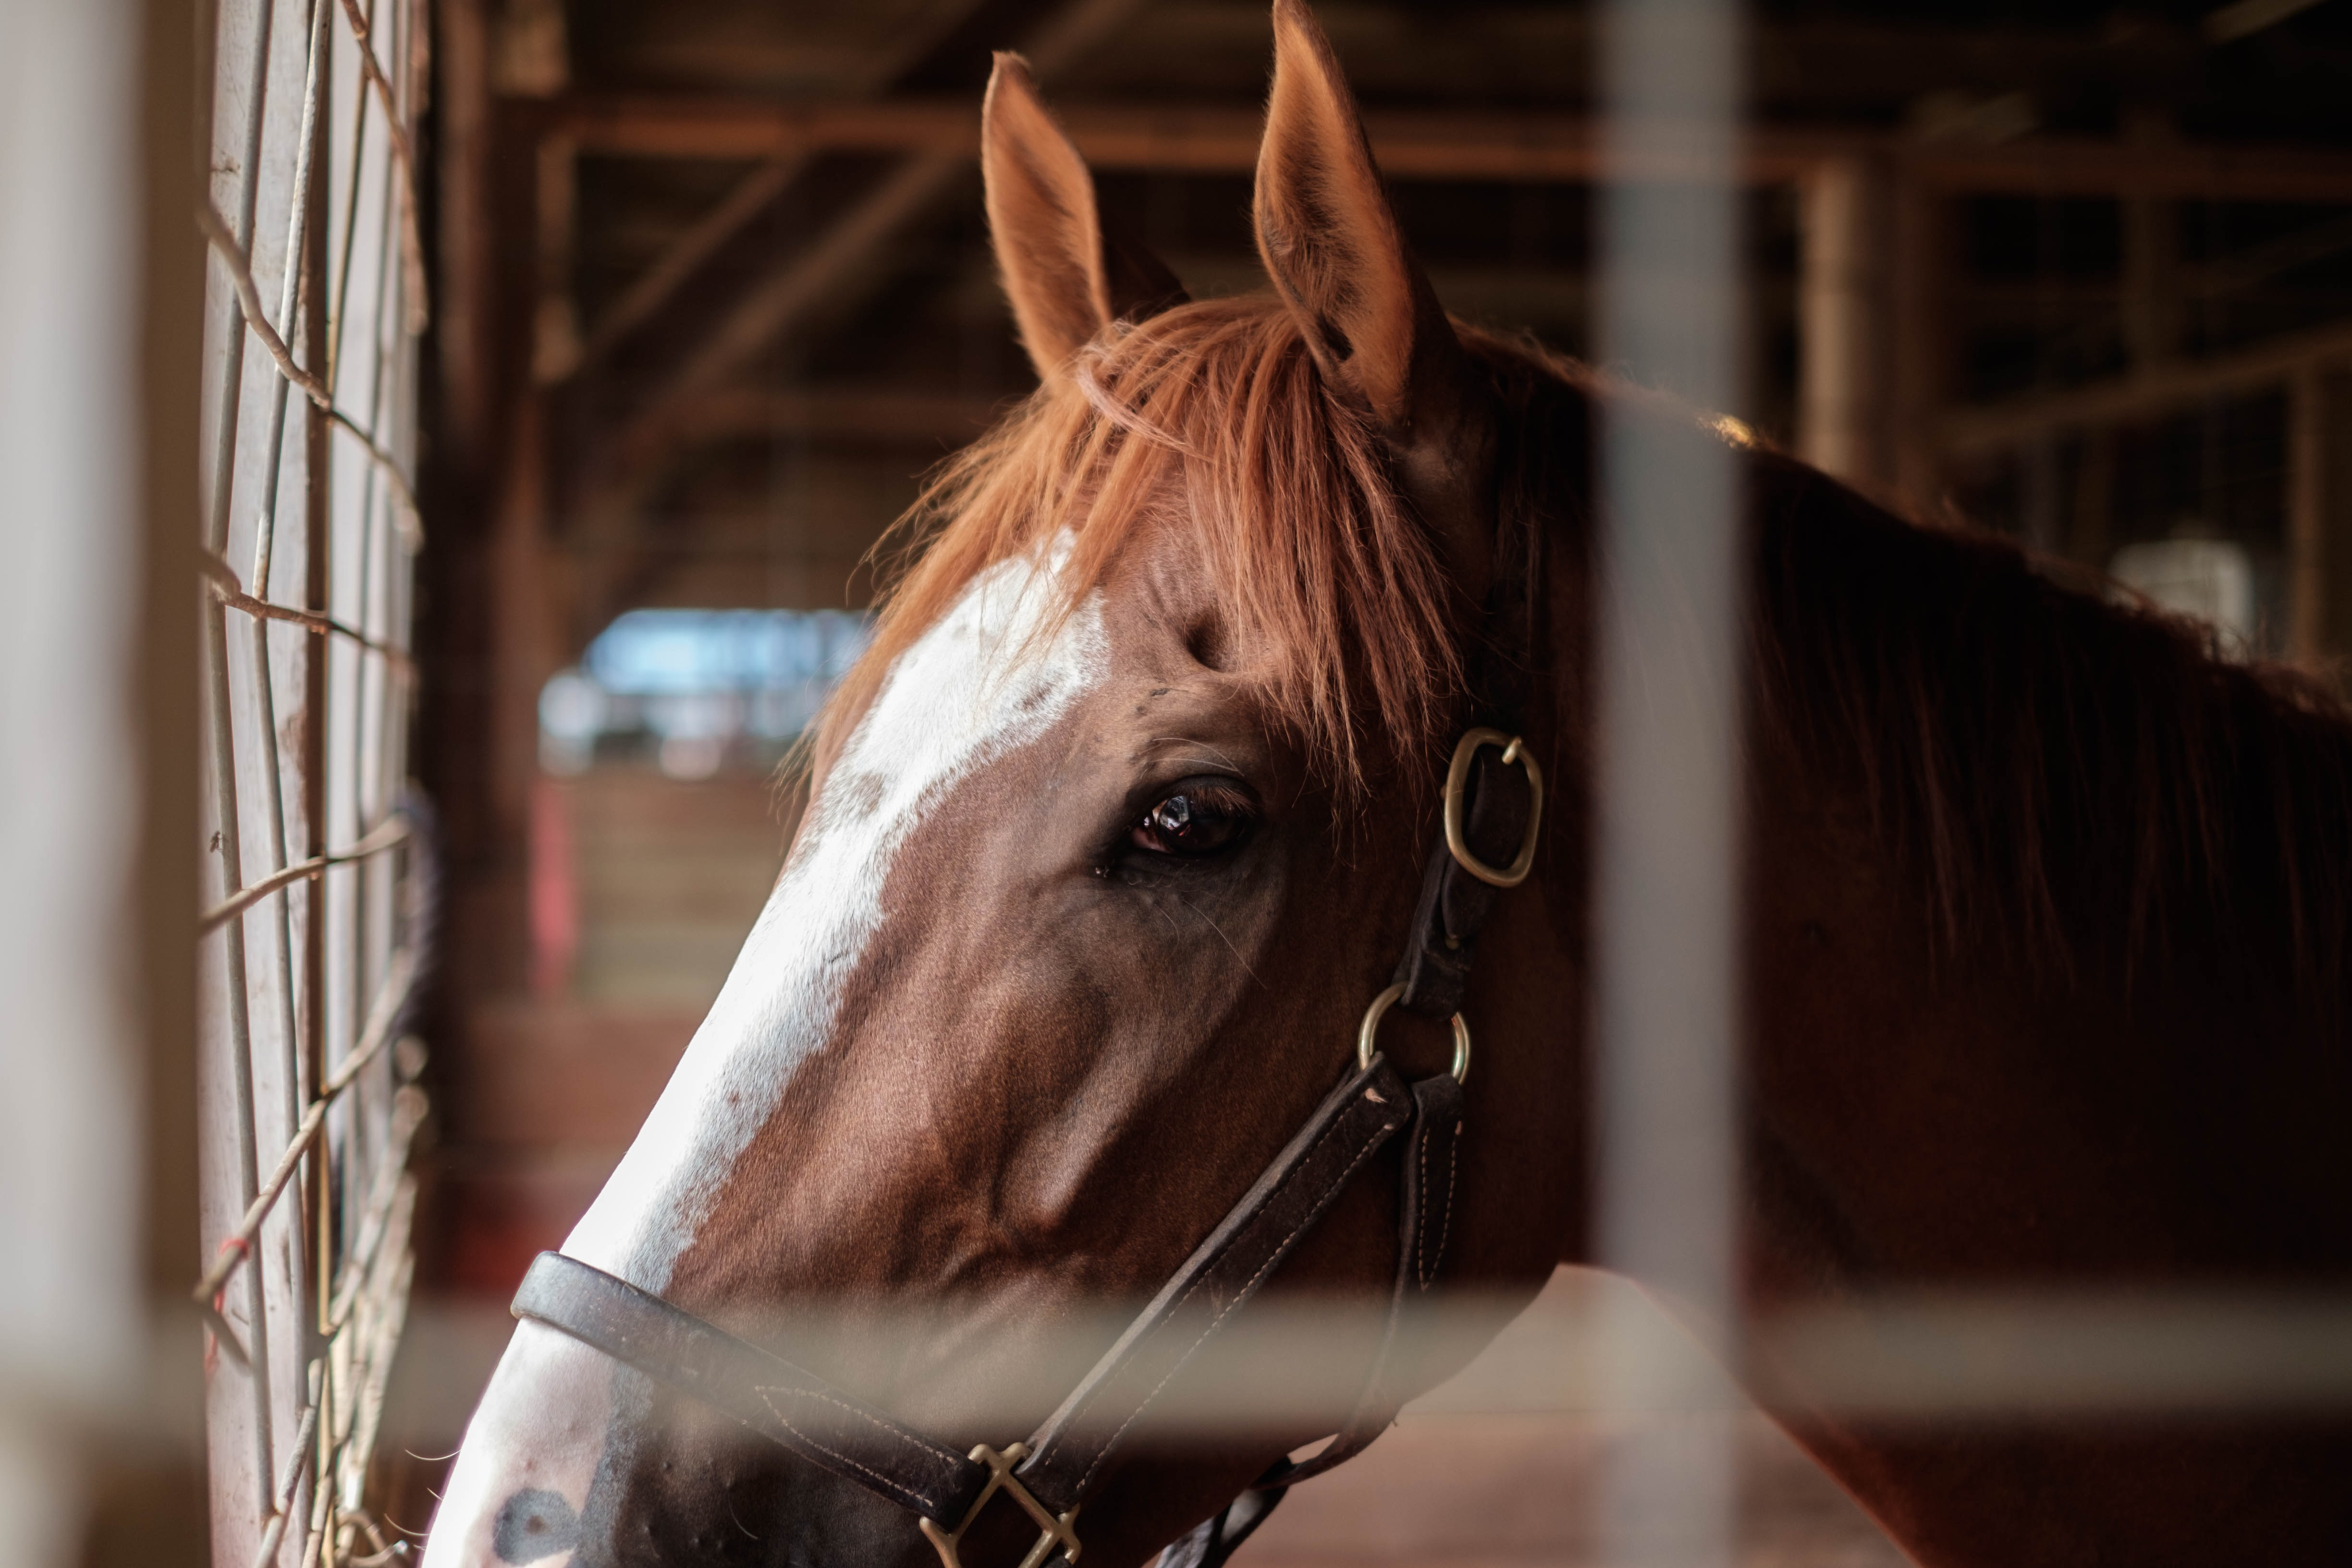 A side shot of a brown horse with a white stripe along its head in a stable